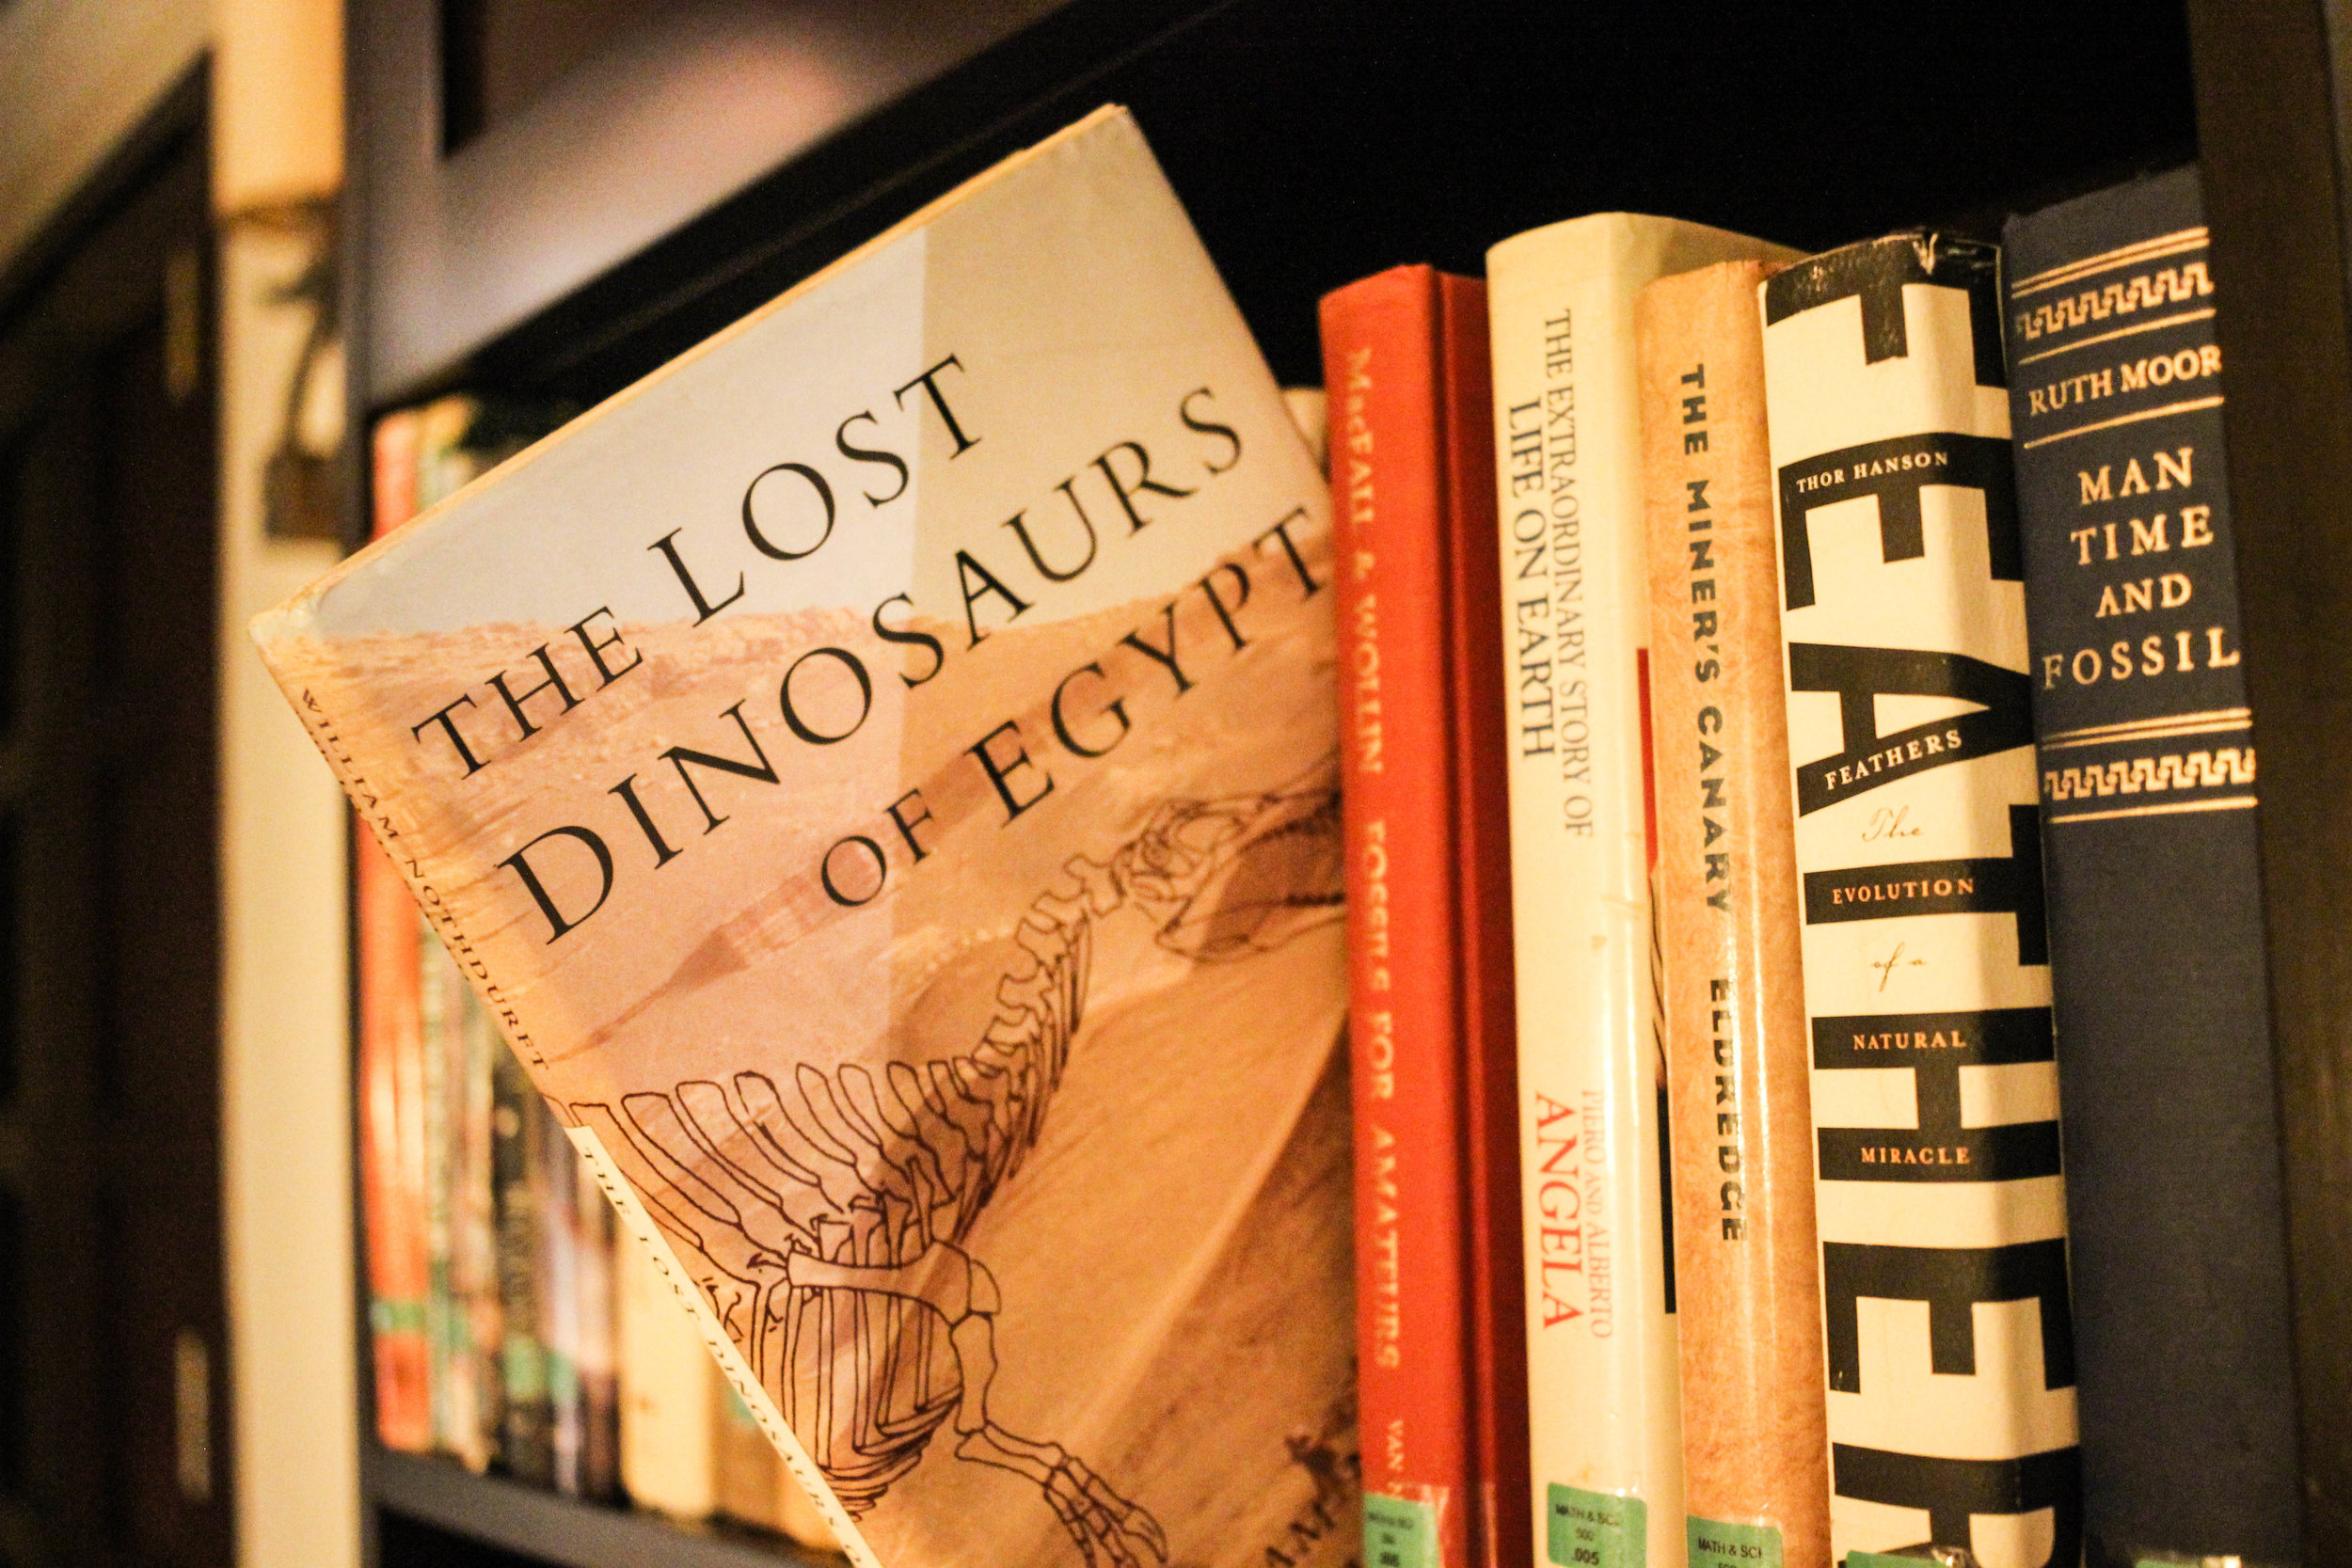 One of the many dinosaur themed books in the room.